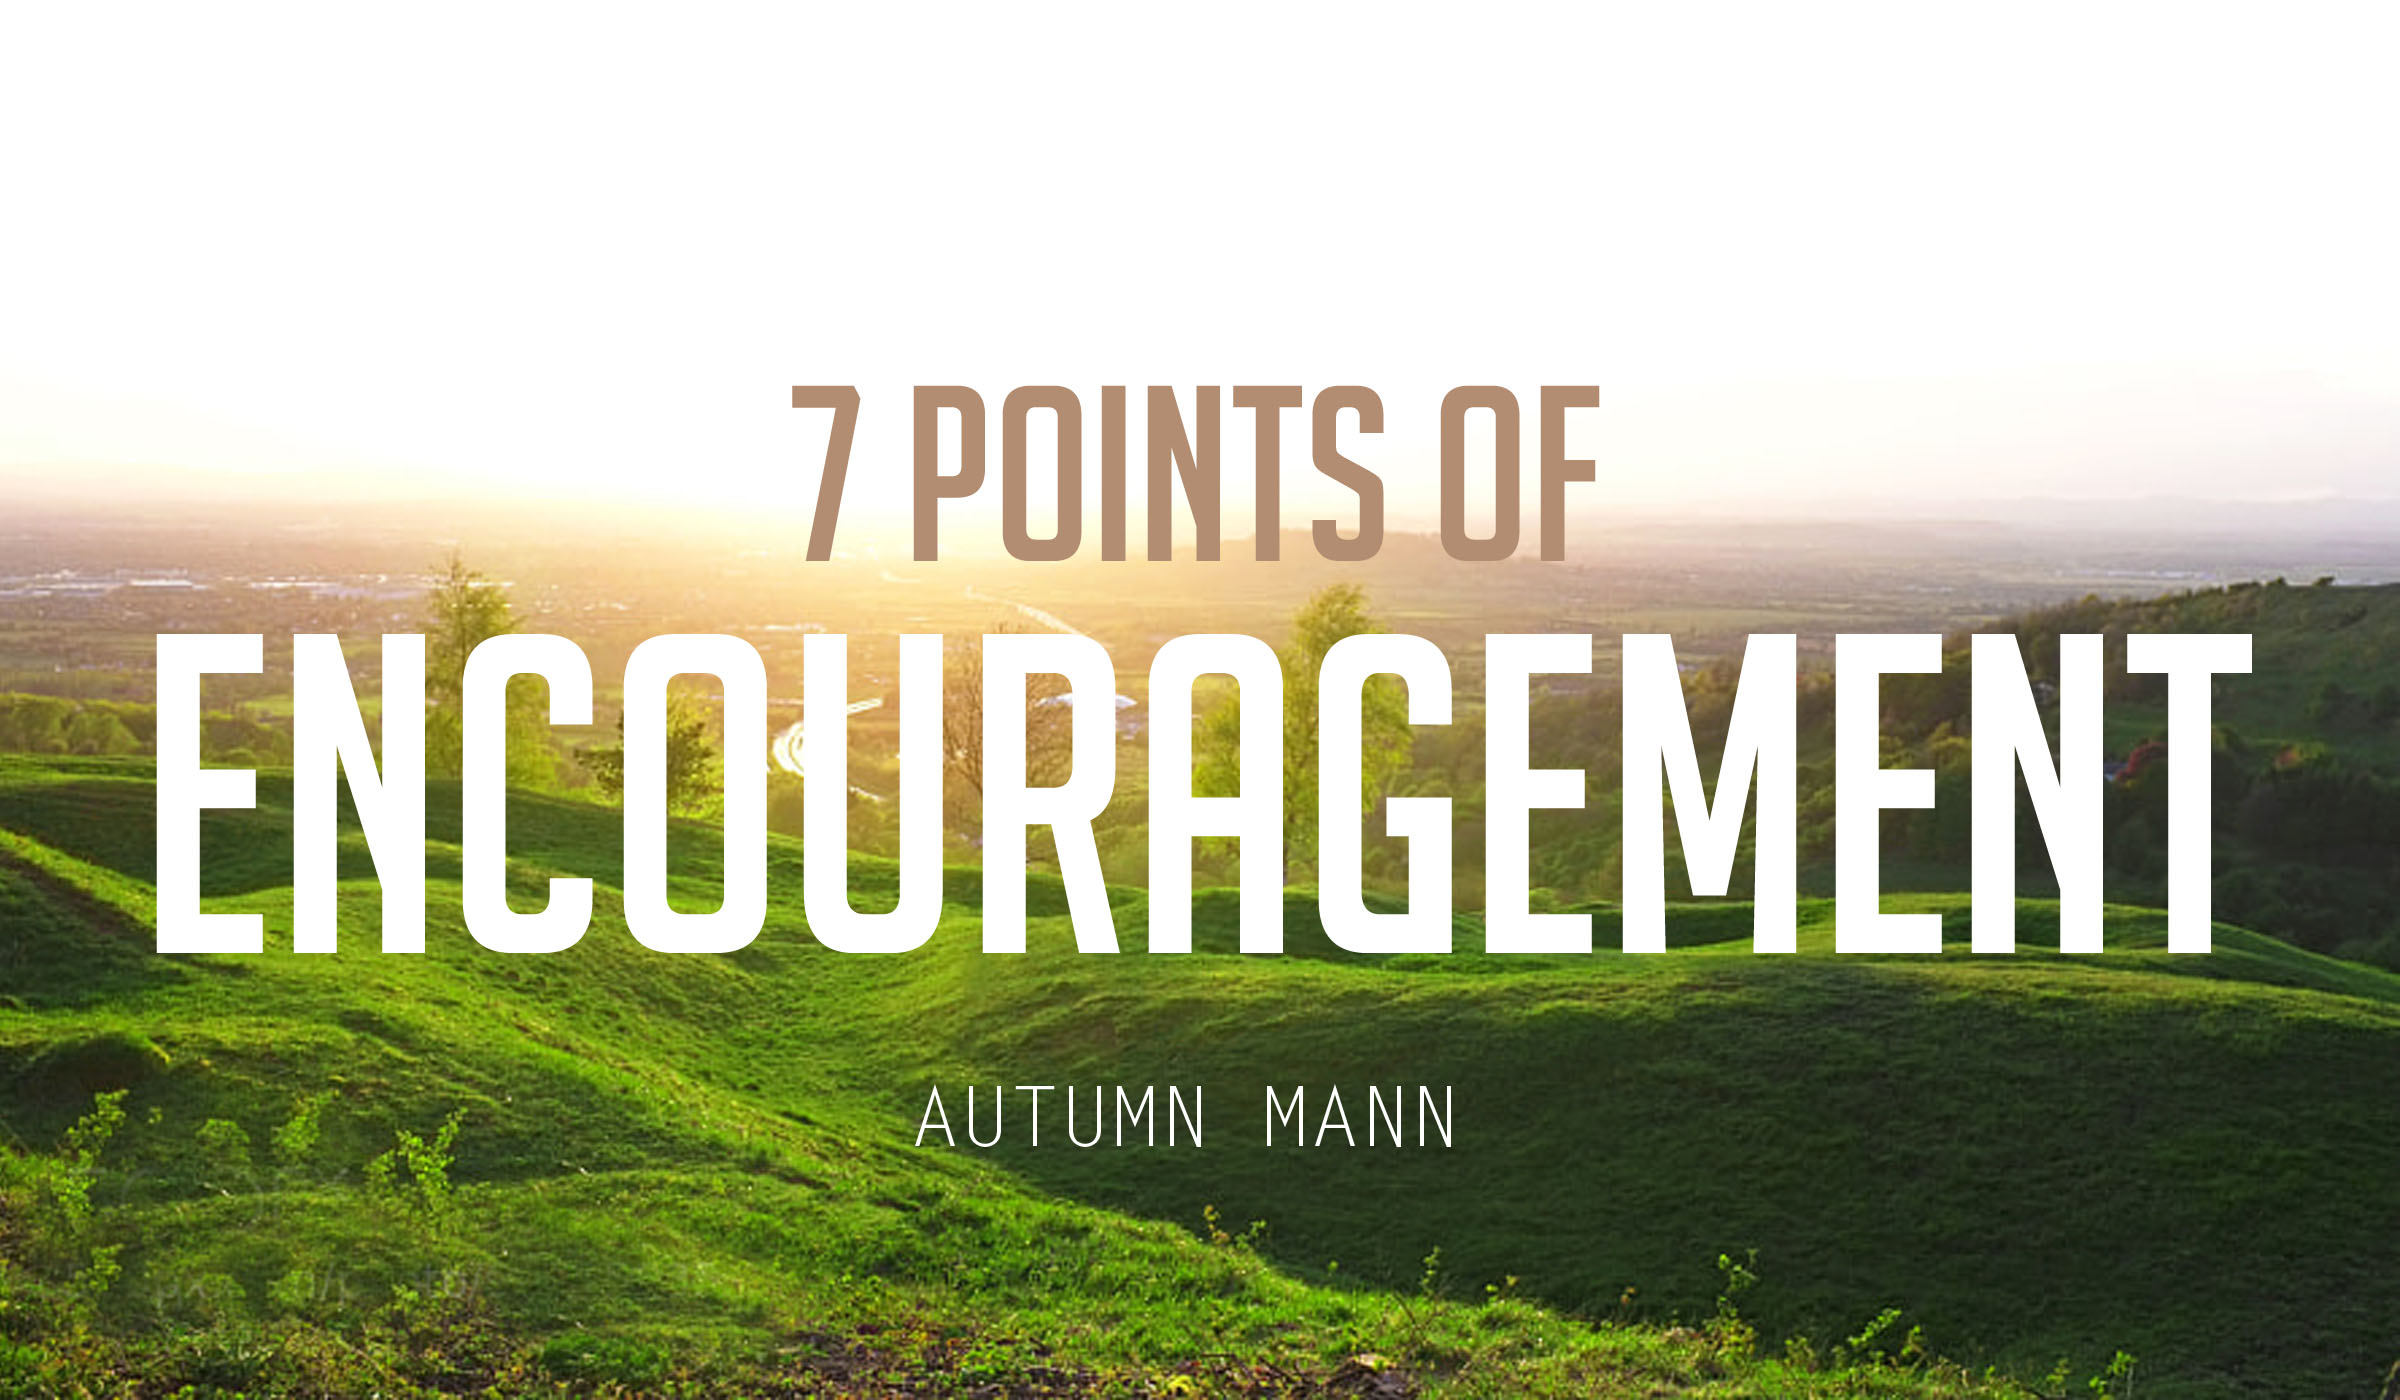 7 Points of Encouragement